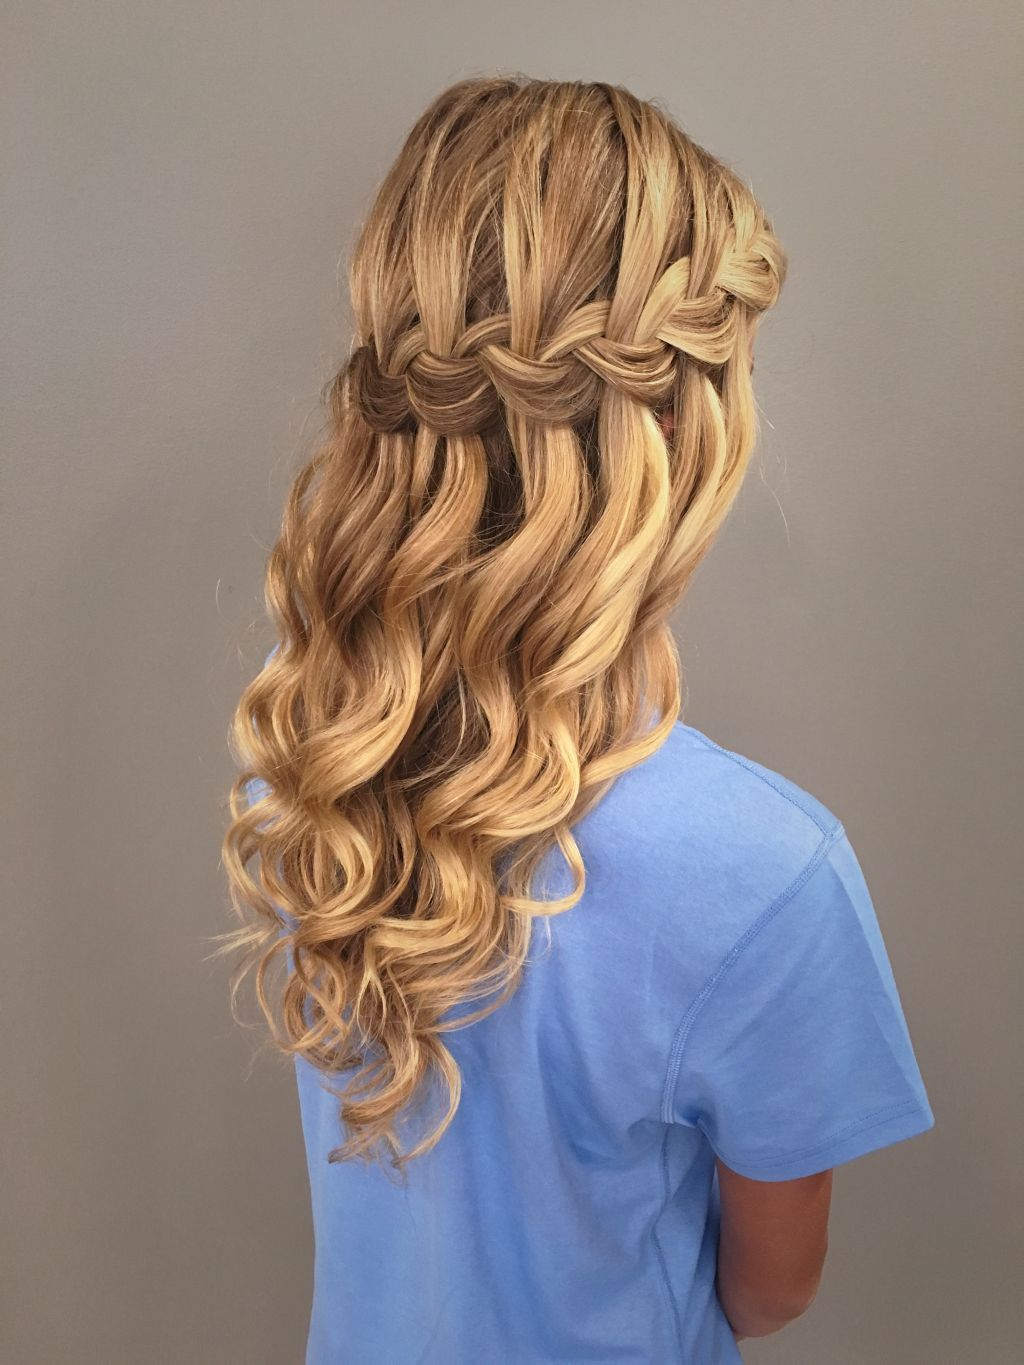 24 best homecoming hairstyles for long hair: 20 cute